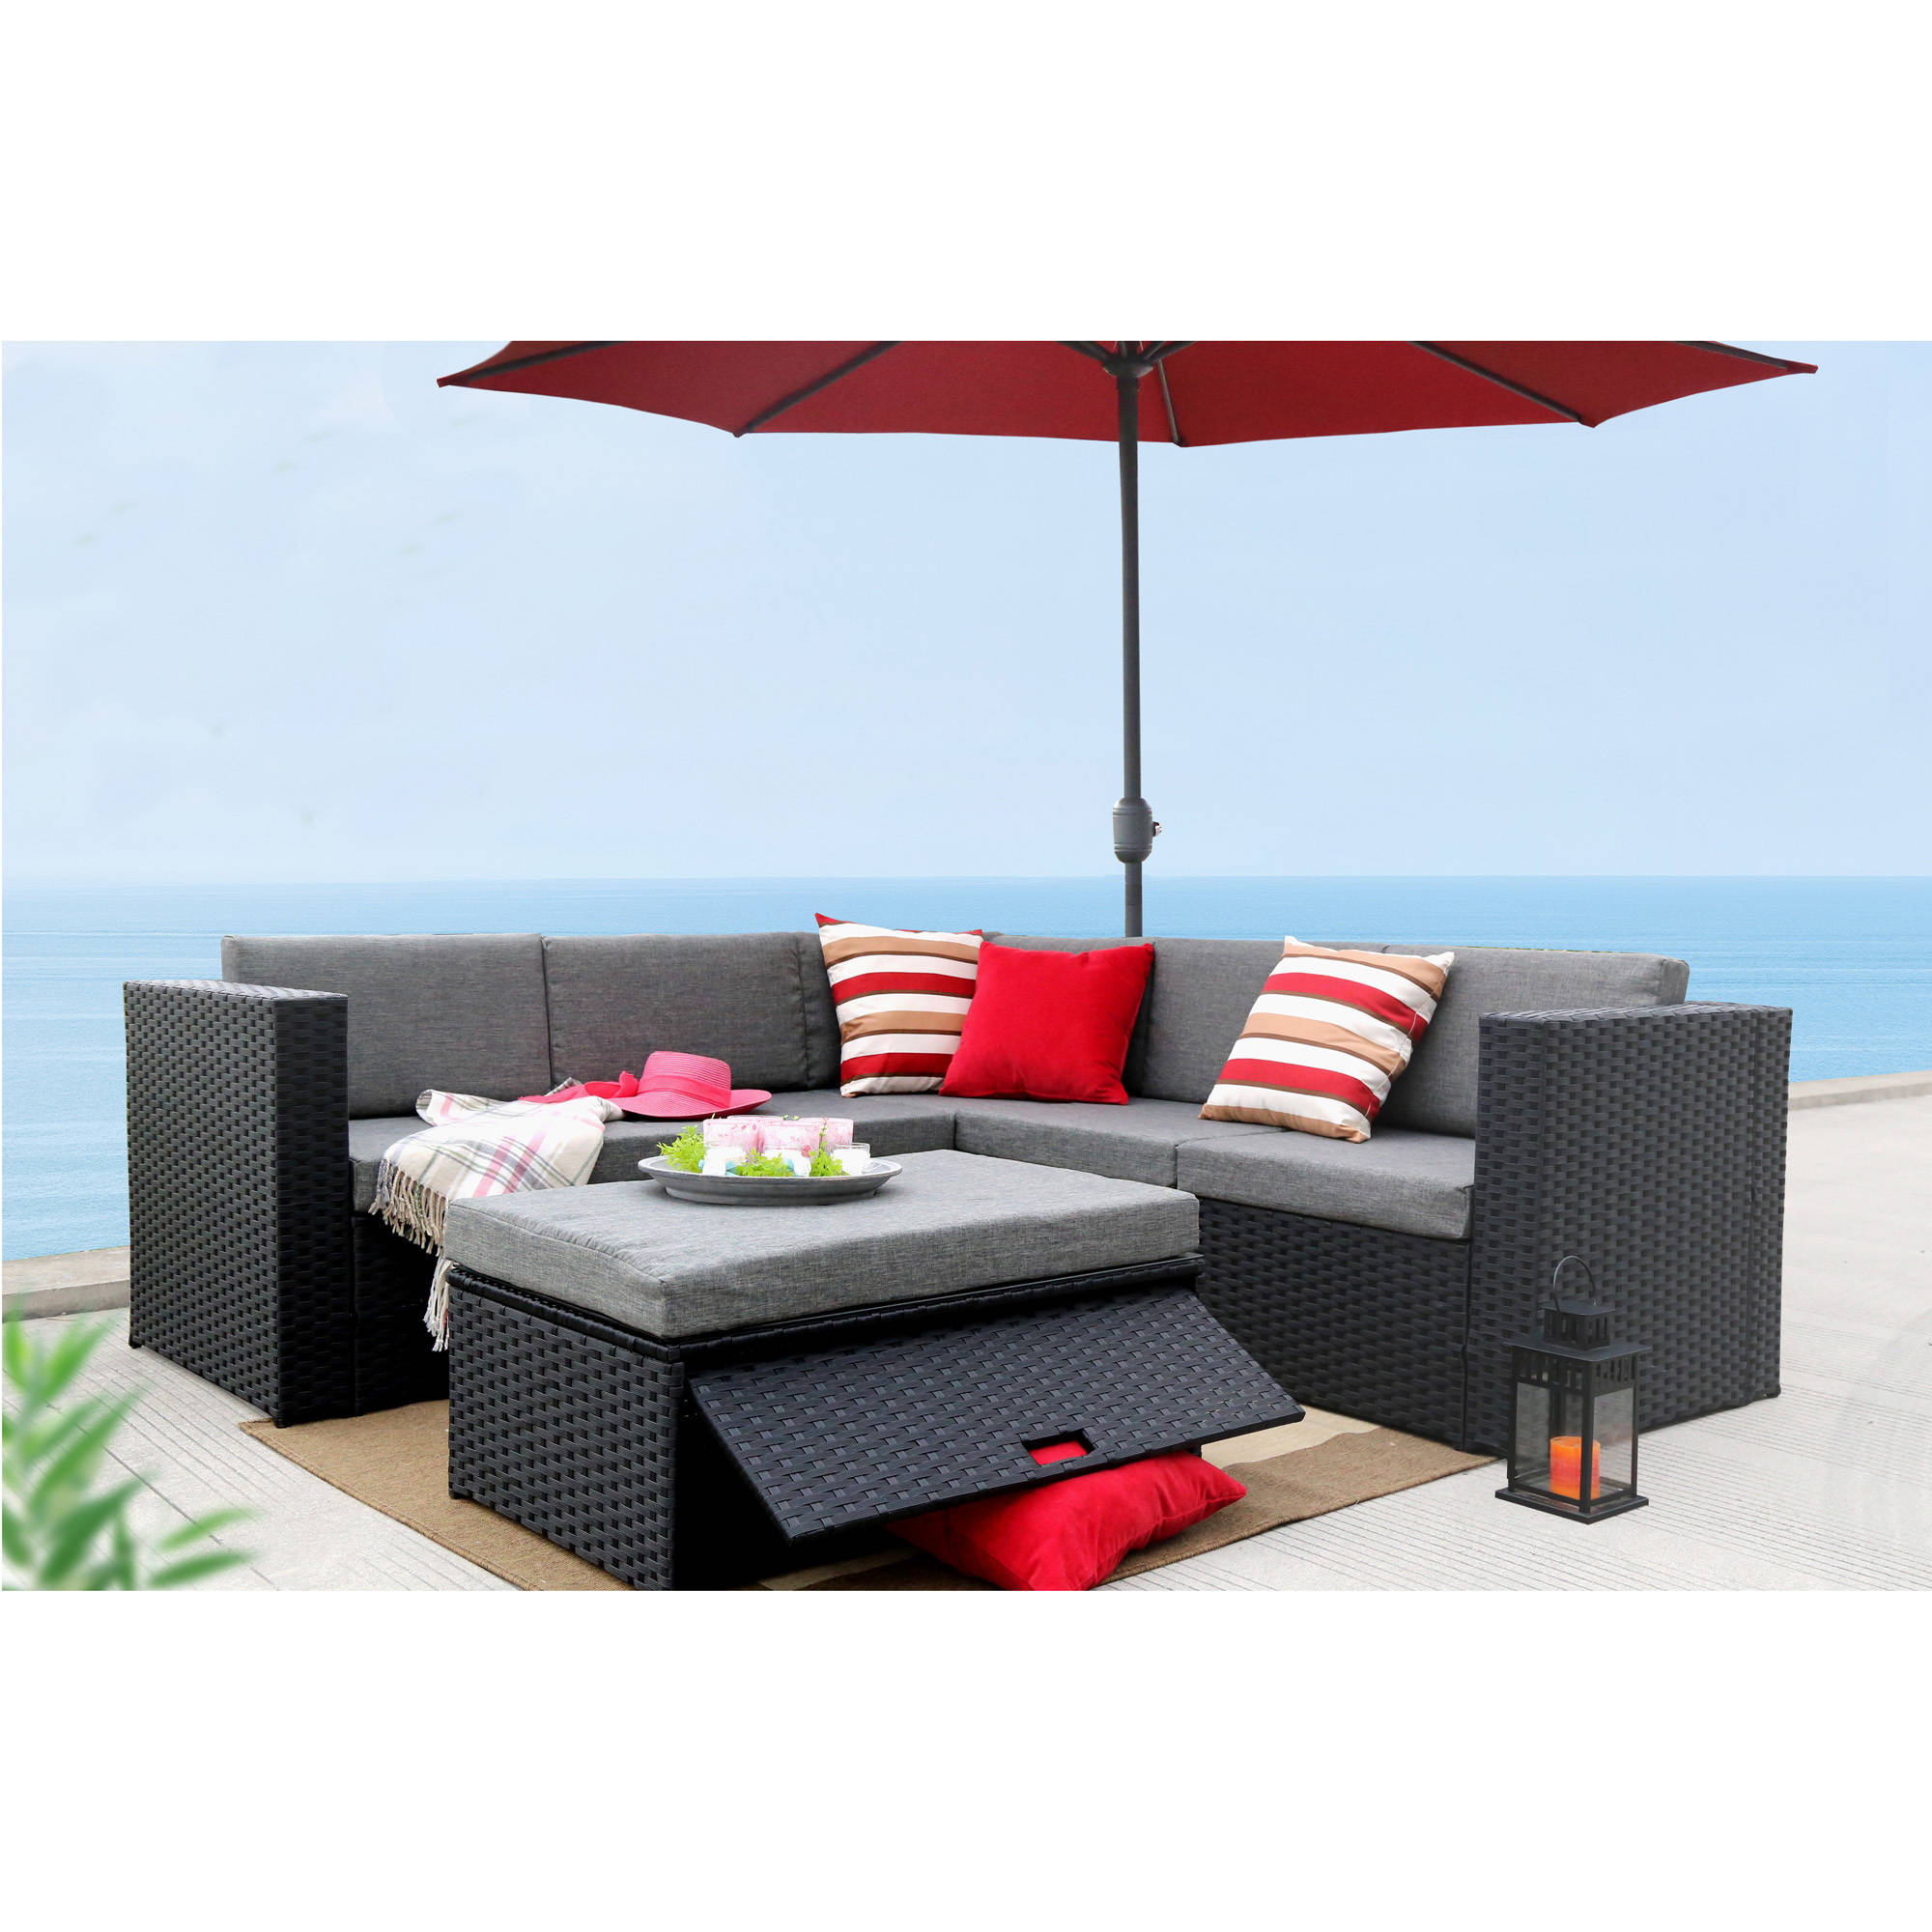 Baner Garden Outdoor Furniture Complete Patio PE Wicker Rattan Garden Corner Sofa Couch... by Patio Sets